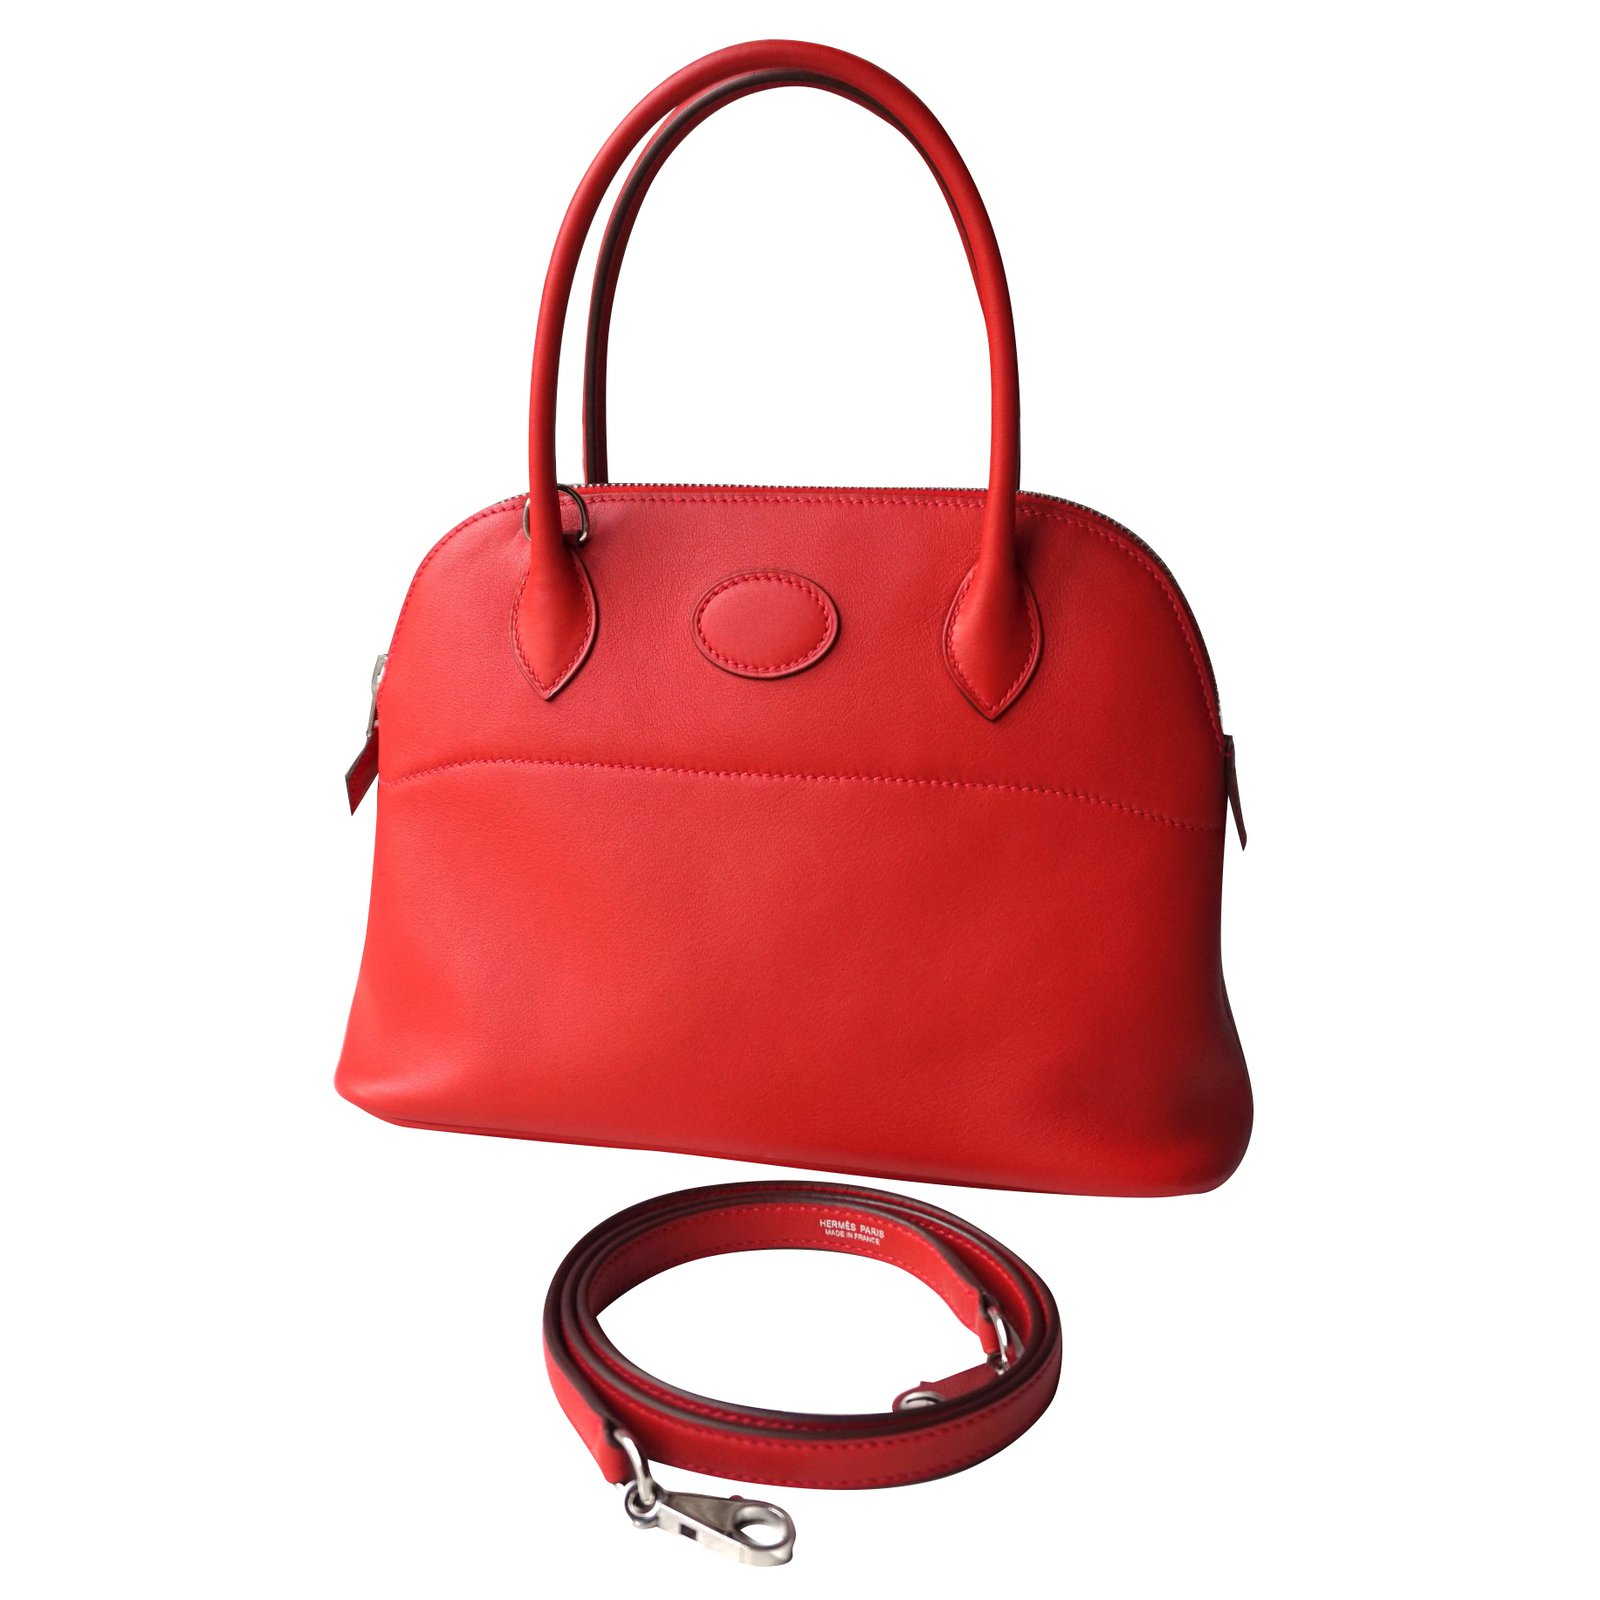 a35b9f9a35ef ... where can i buy hermès bolide 27 handbags leather red ref.36787 3a91f  63310